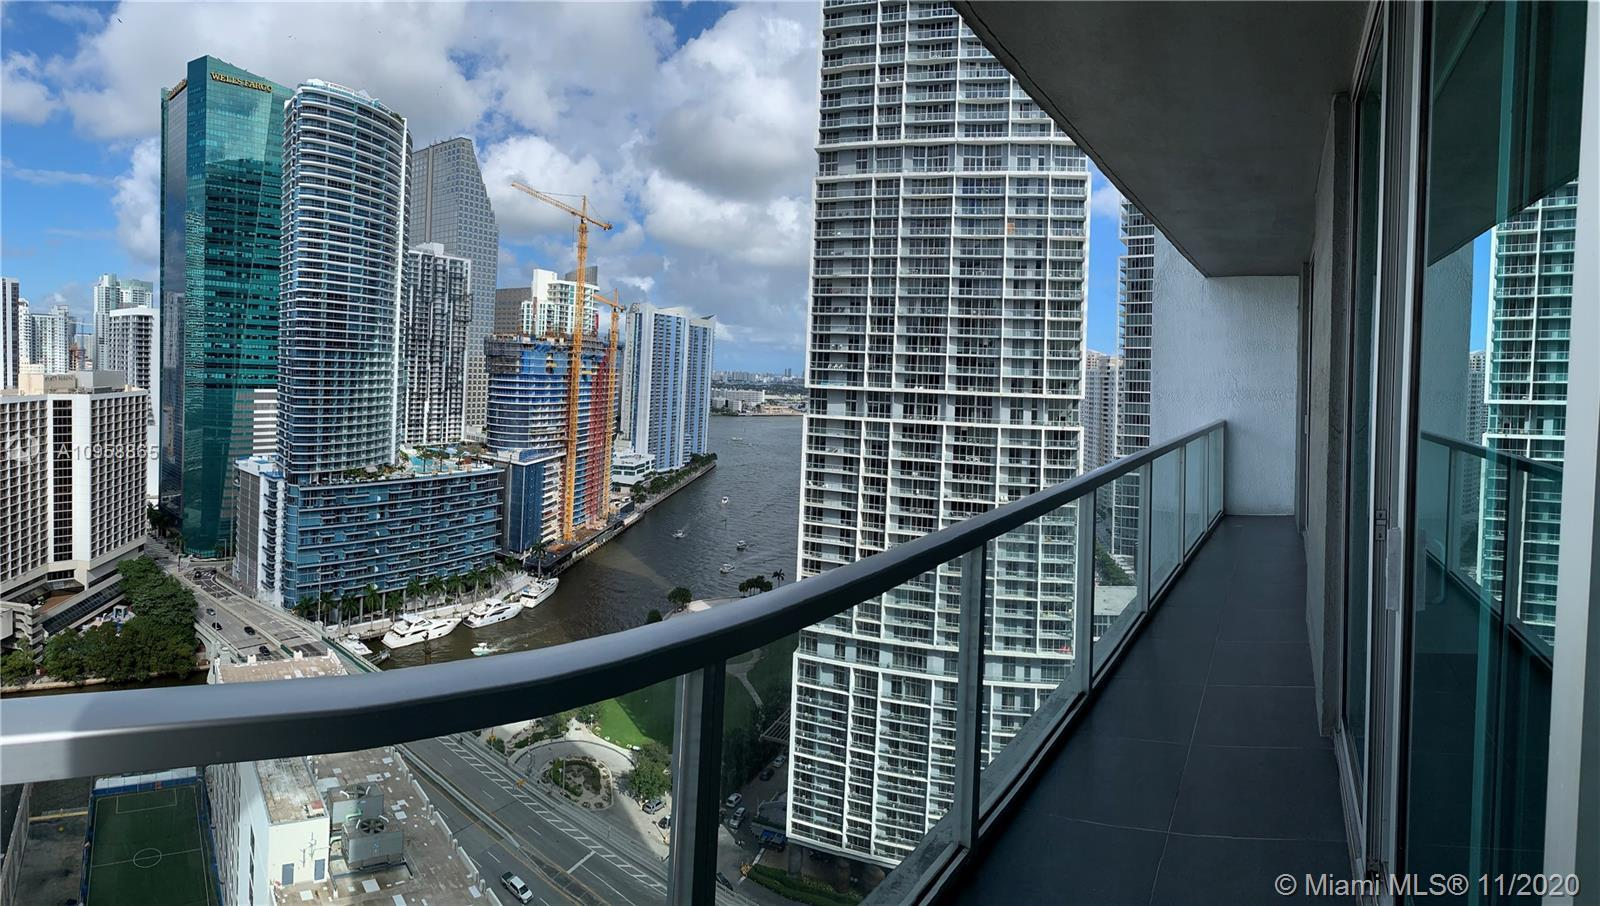 Great opportunity to own a 2 bed/2 bath north-facing unit in the heart of Miami's desirable Brickell